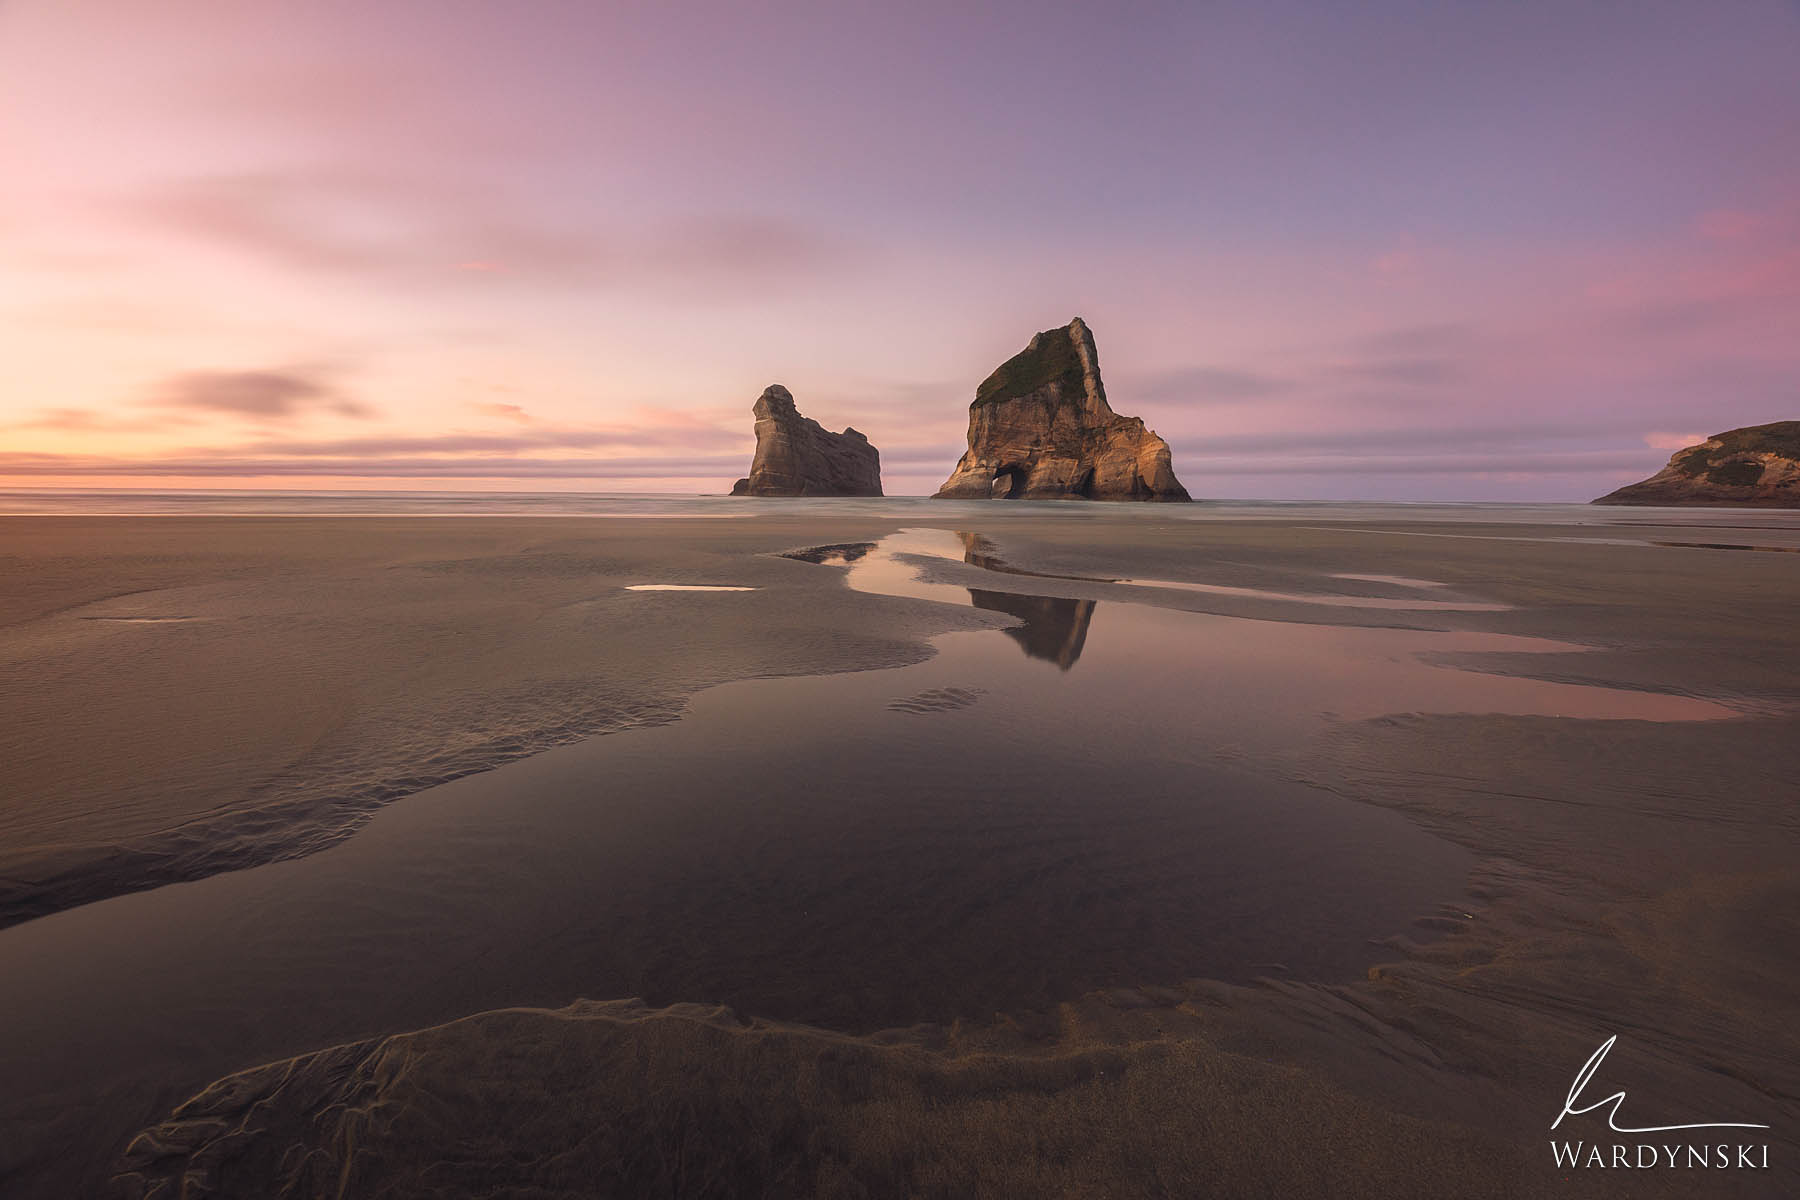 Fine Art Print | Limited Edition of 100  The Archway Islands sit off of the cost of Wharariki Beach in New Zealand. These impressive...